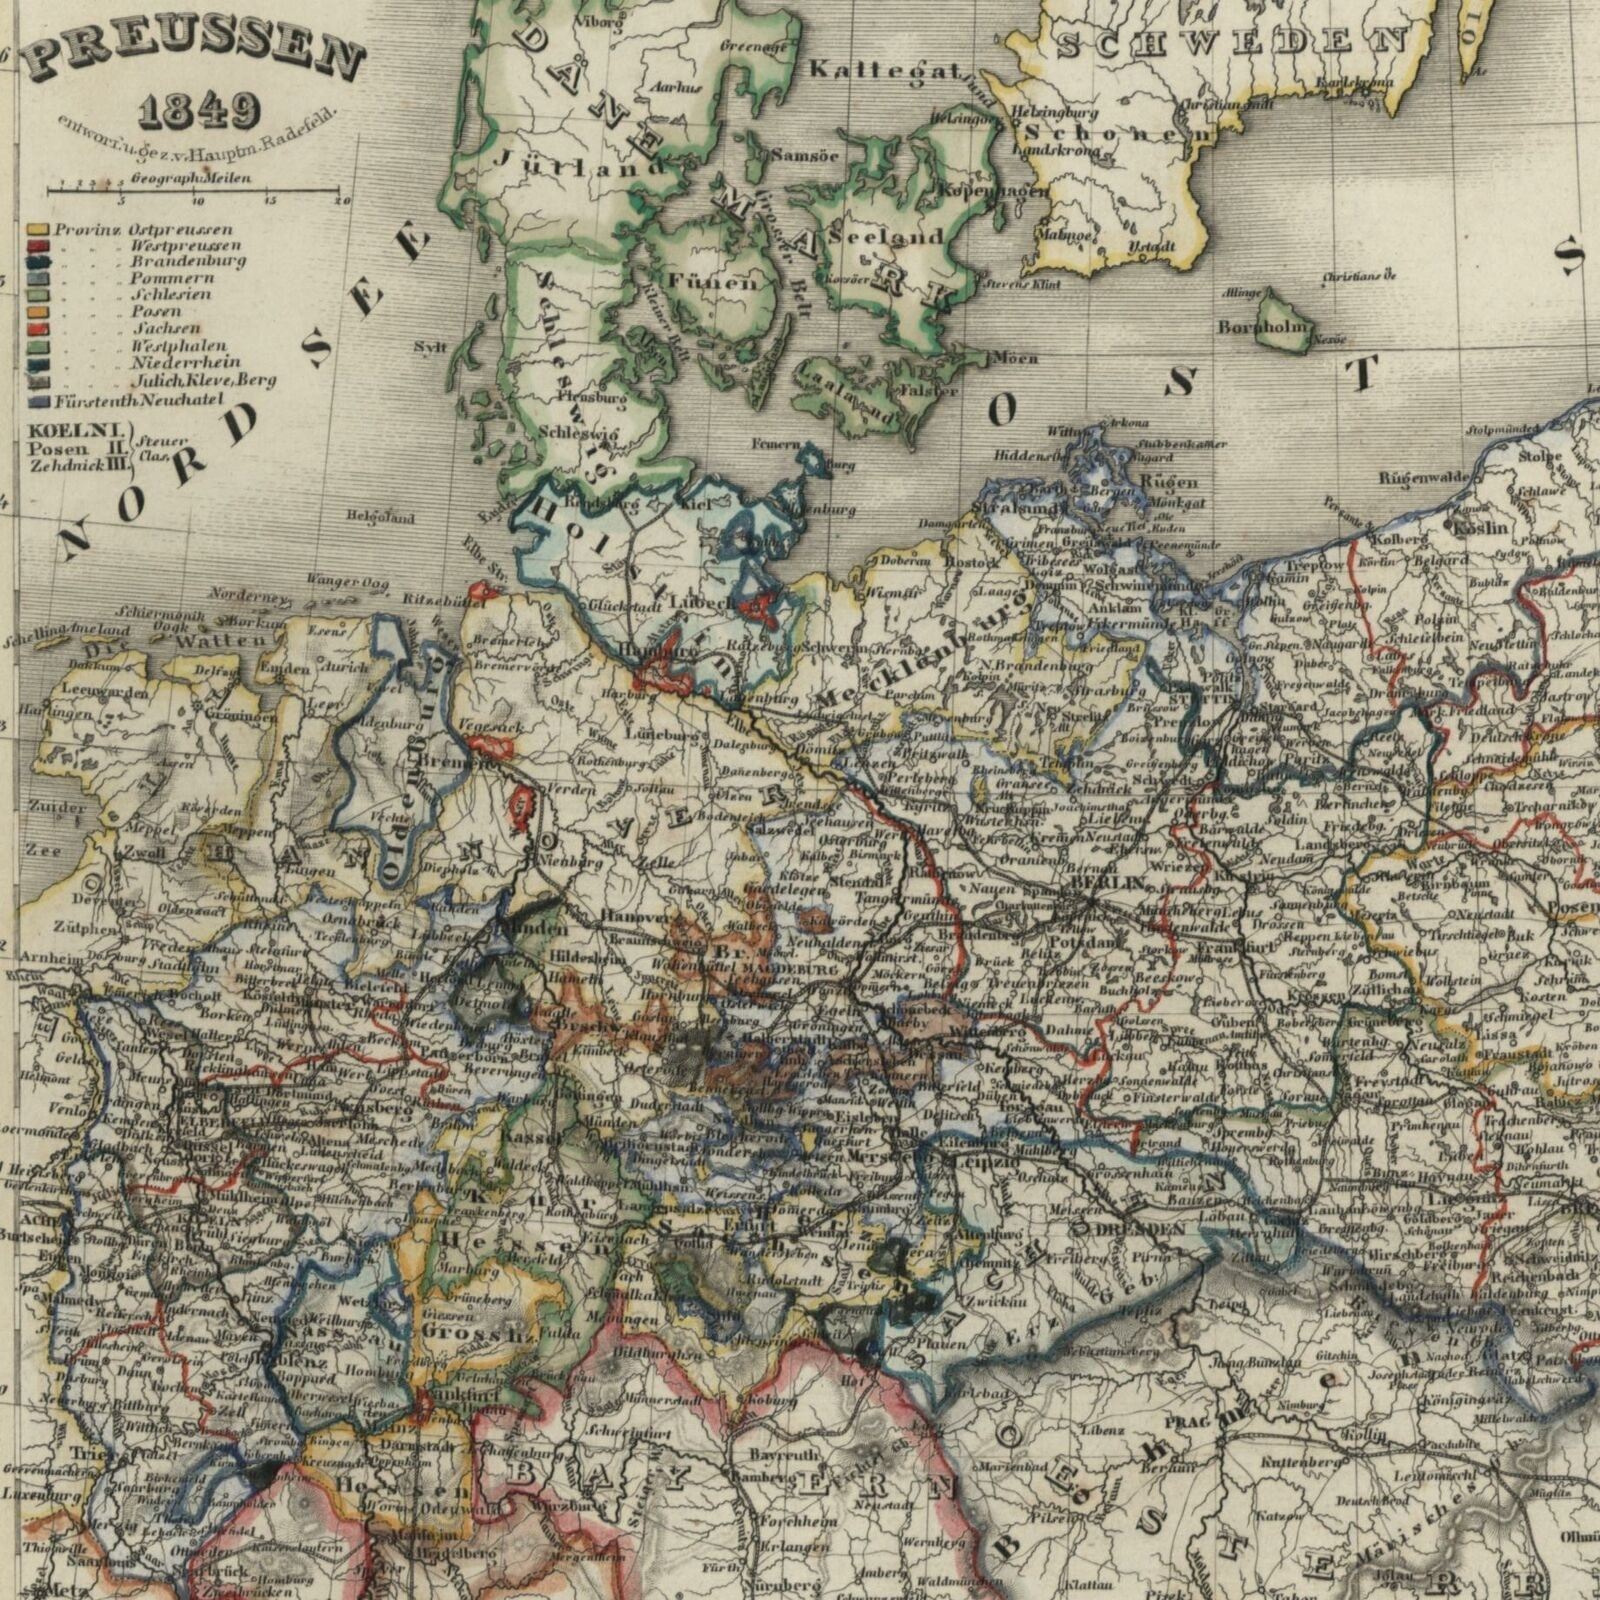 Germany Prussia Poland East Sea 1849 Meyer Detailed Map | Ebay throughout East Sea Germany Map